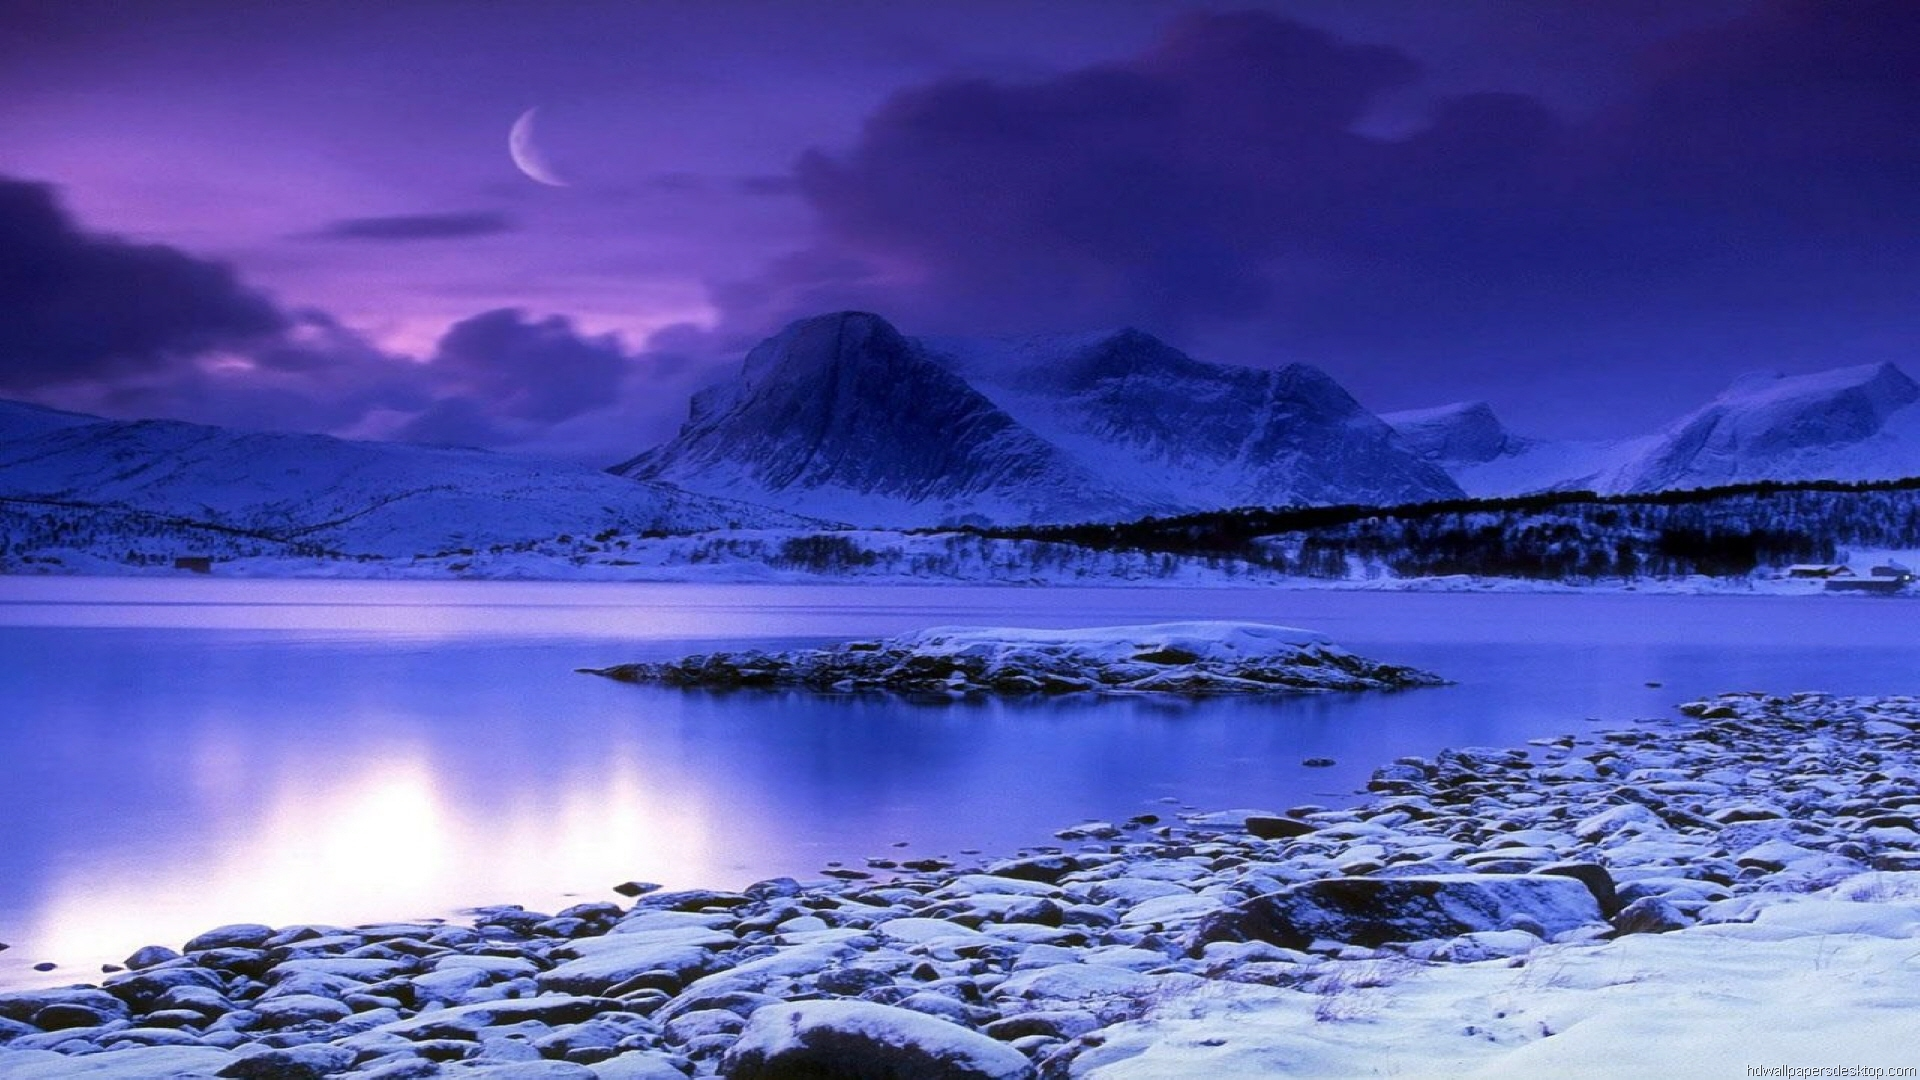 41 hd nature wallpapers 1920x1080 on wallpapersafari - Nature background 1920x1080 ...